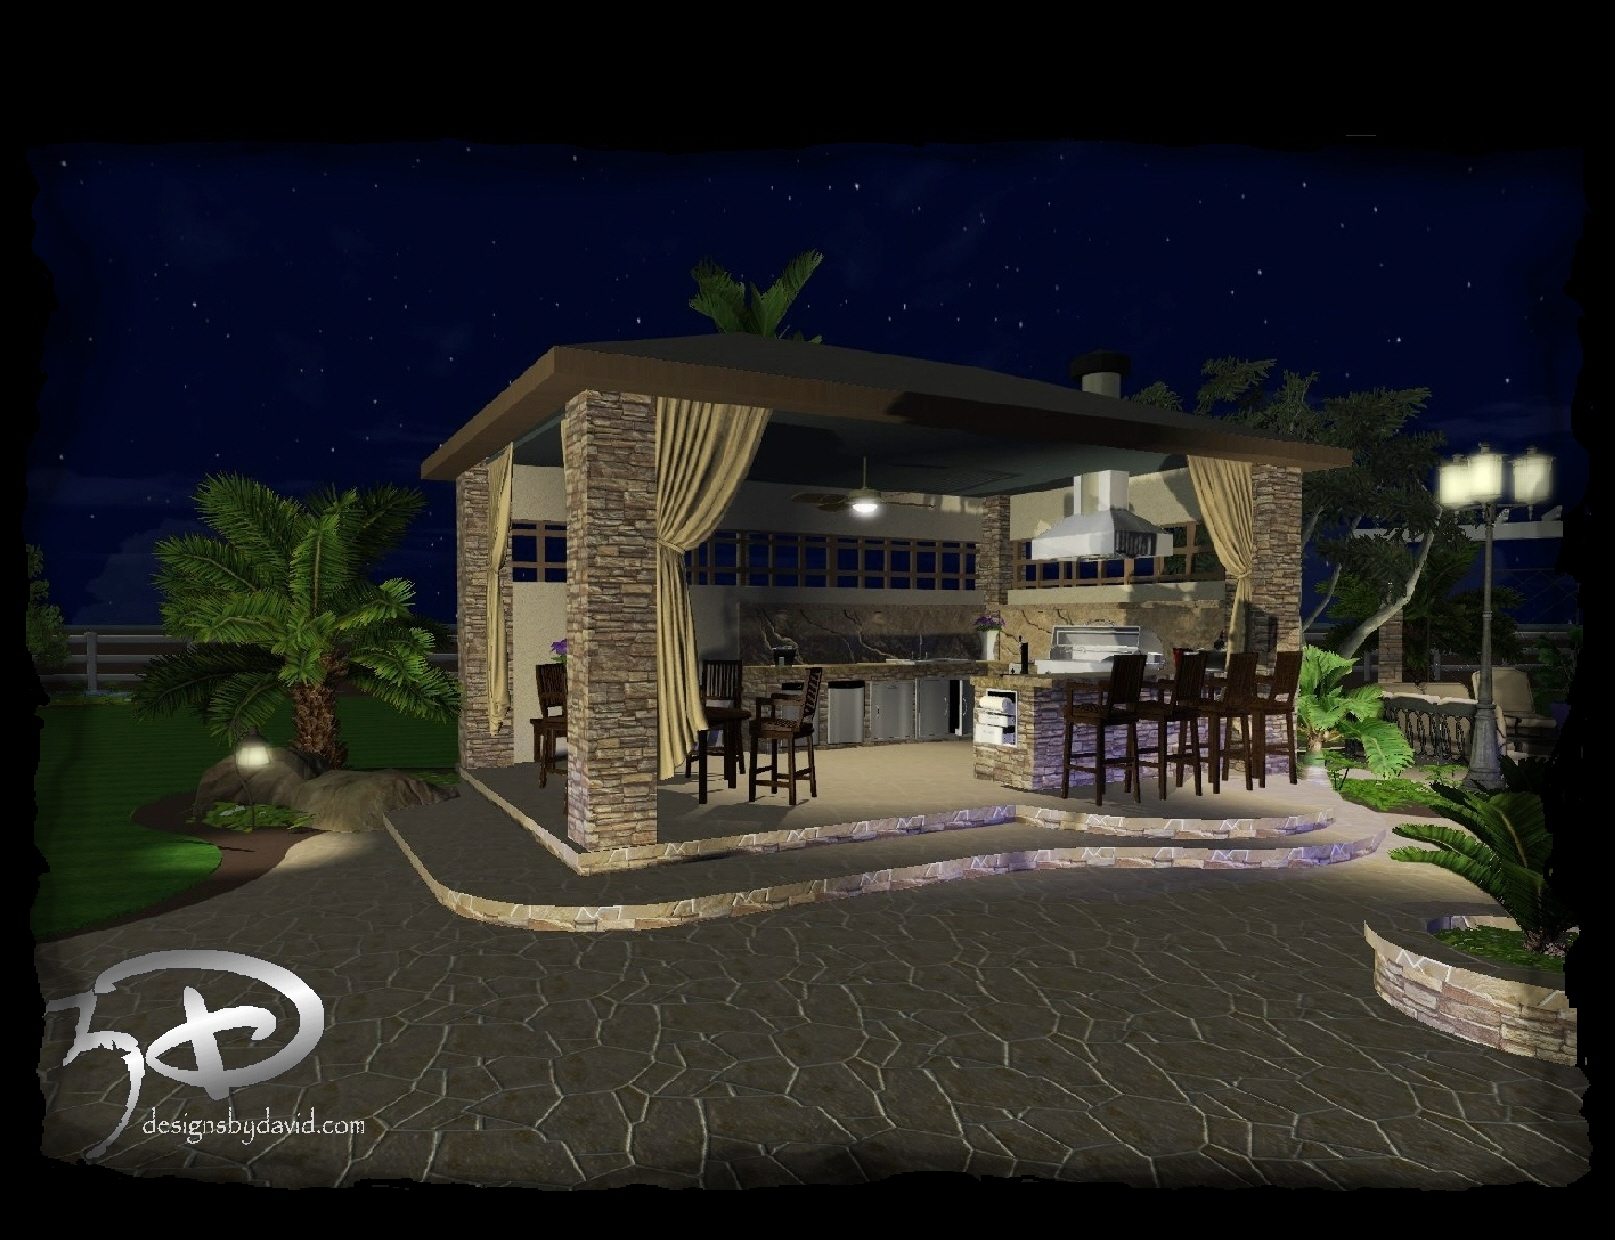 Cabanas outdoor kitchens 3d designs by david for Outdoor cabana designs